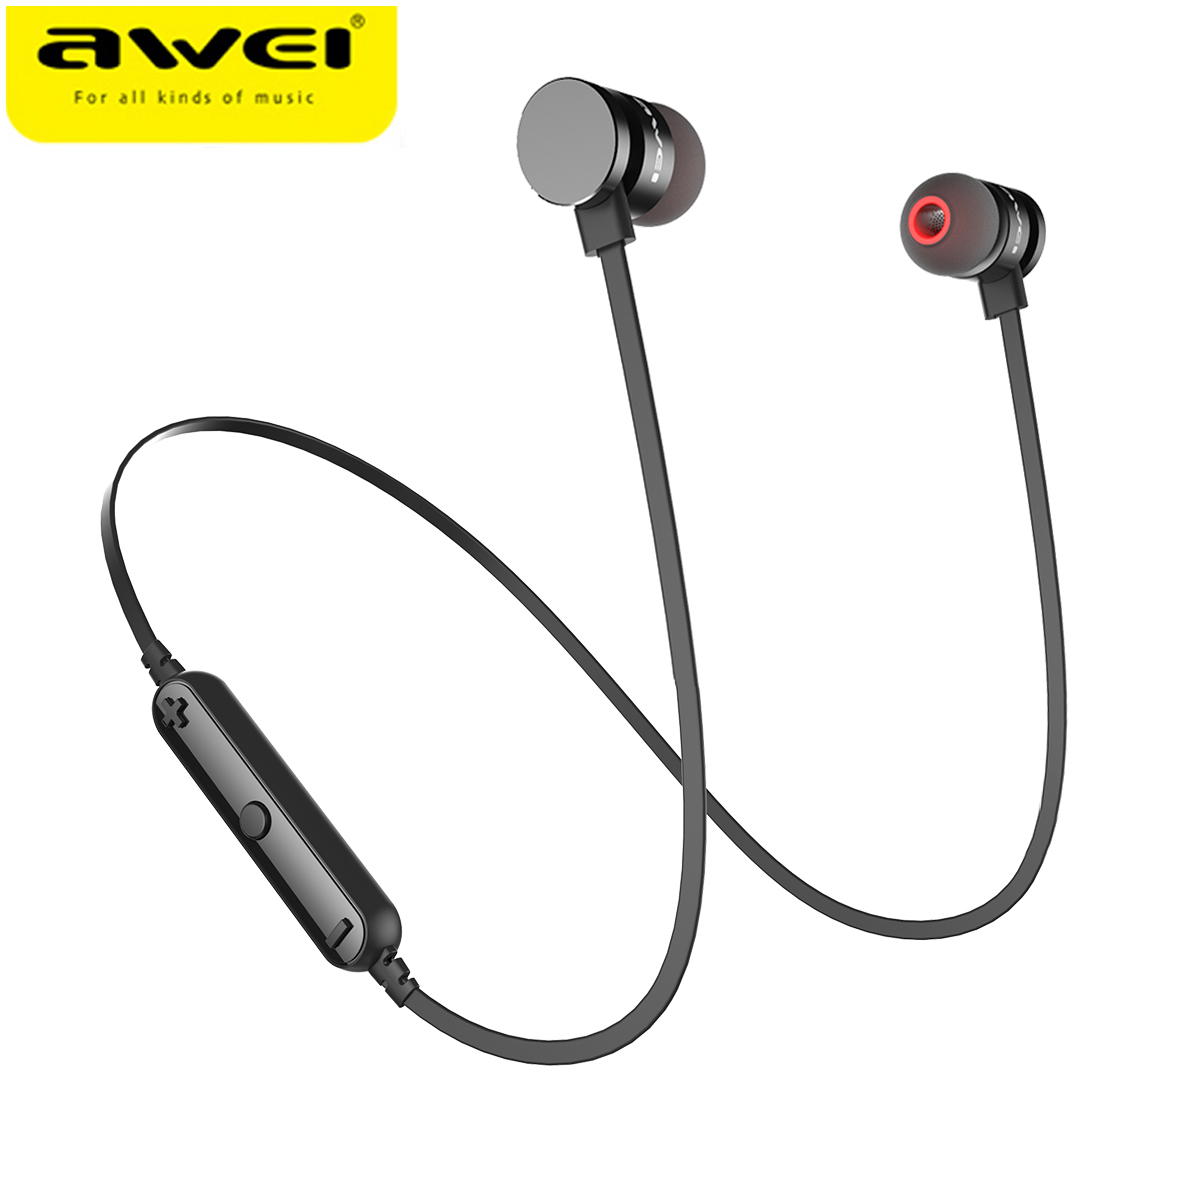 2017 Newest AWEI T11 Wireless Headphone Bluetooth V4.2 Earphone Fone de ouvido Sports Music Headset For iPhone Xiaomi Samsung  new arrival sports fone de ouvido earphone awei a890bl wireless bluetooth earphones audifonos with microphone for xiaomi iphone